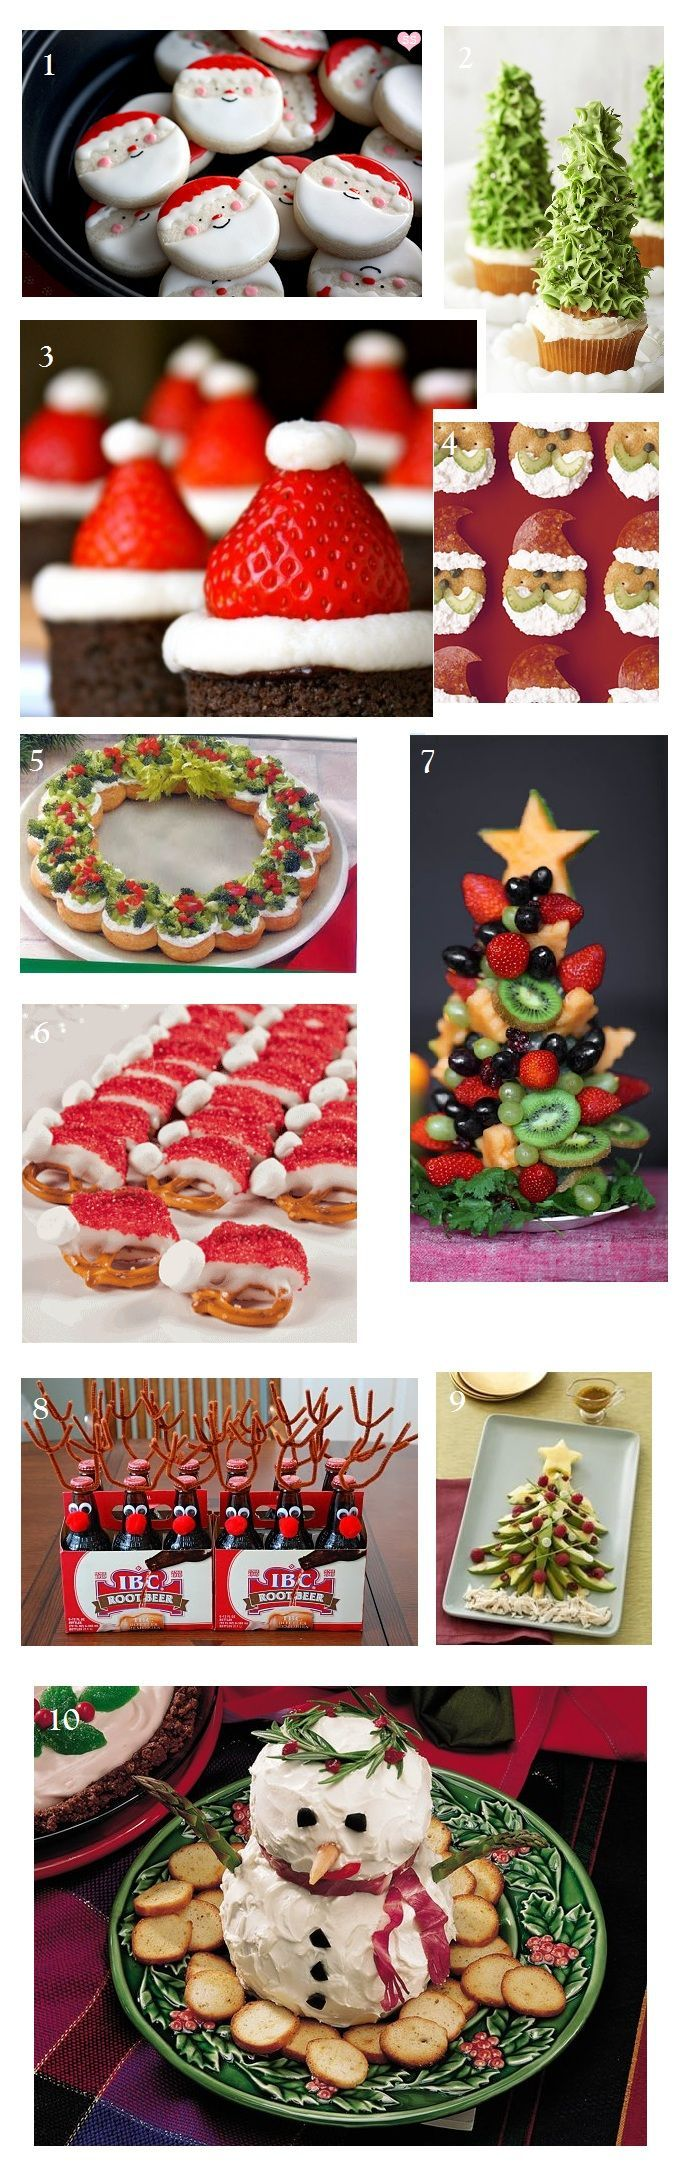 Christmas-Party-Food-Ideas-Appetizers-and-Desserts.jpg 689 × 2 176 pixlar